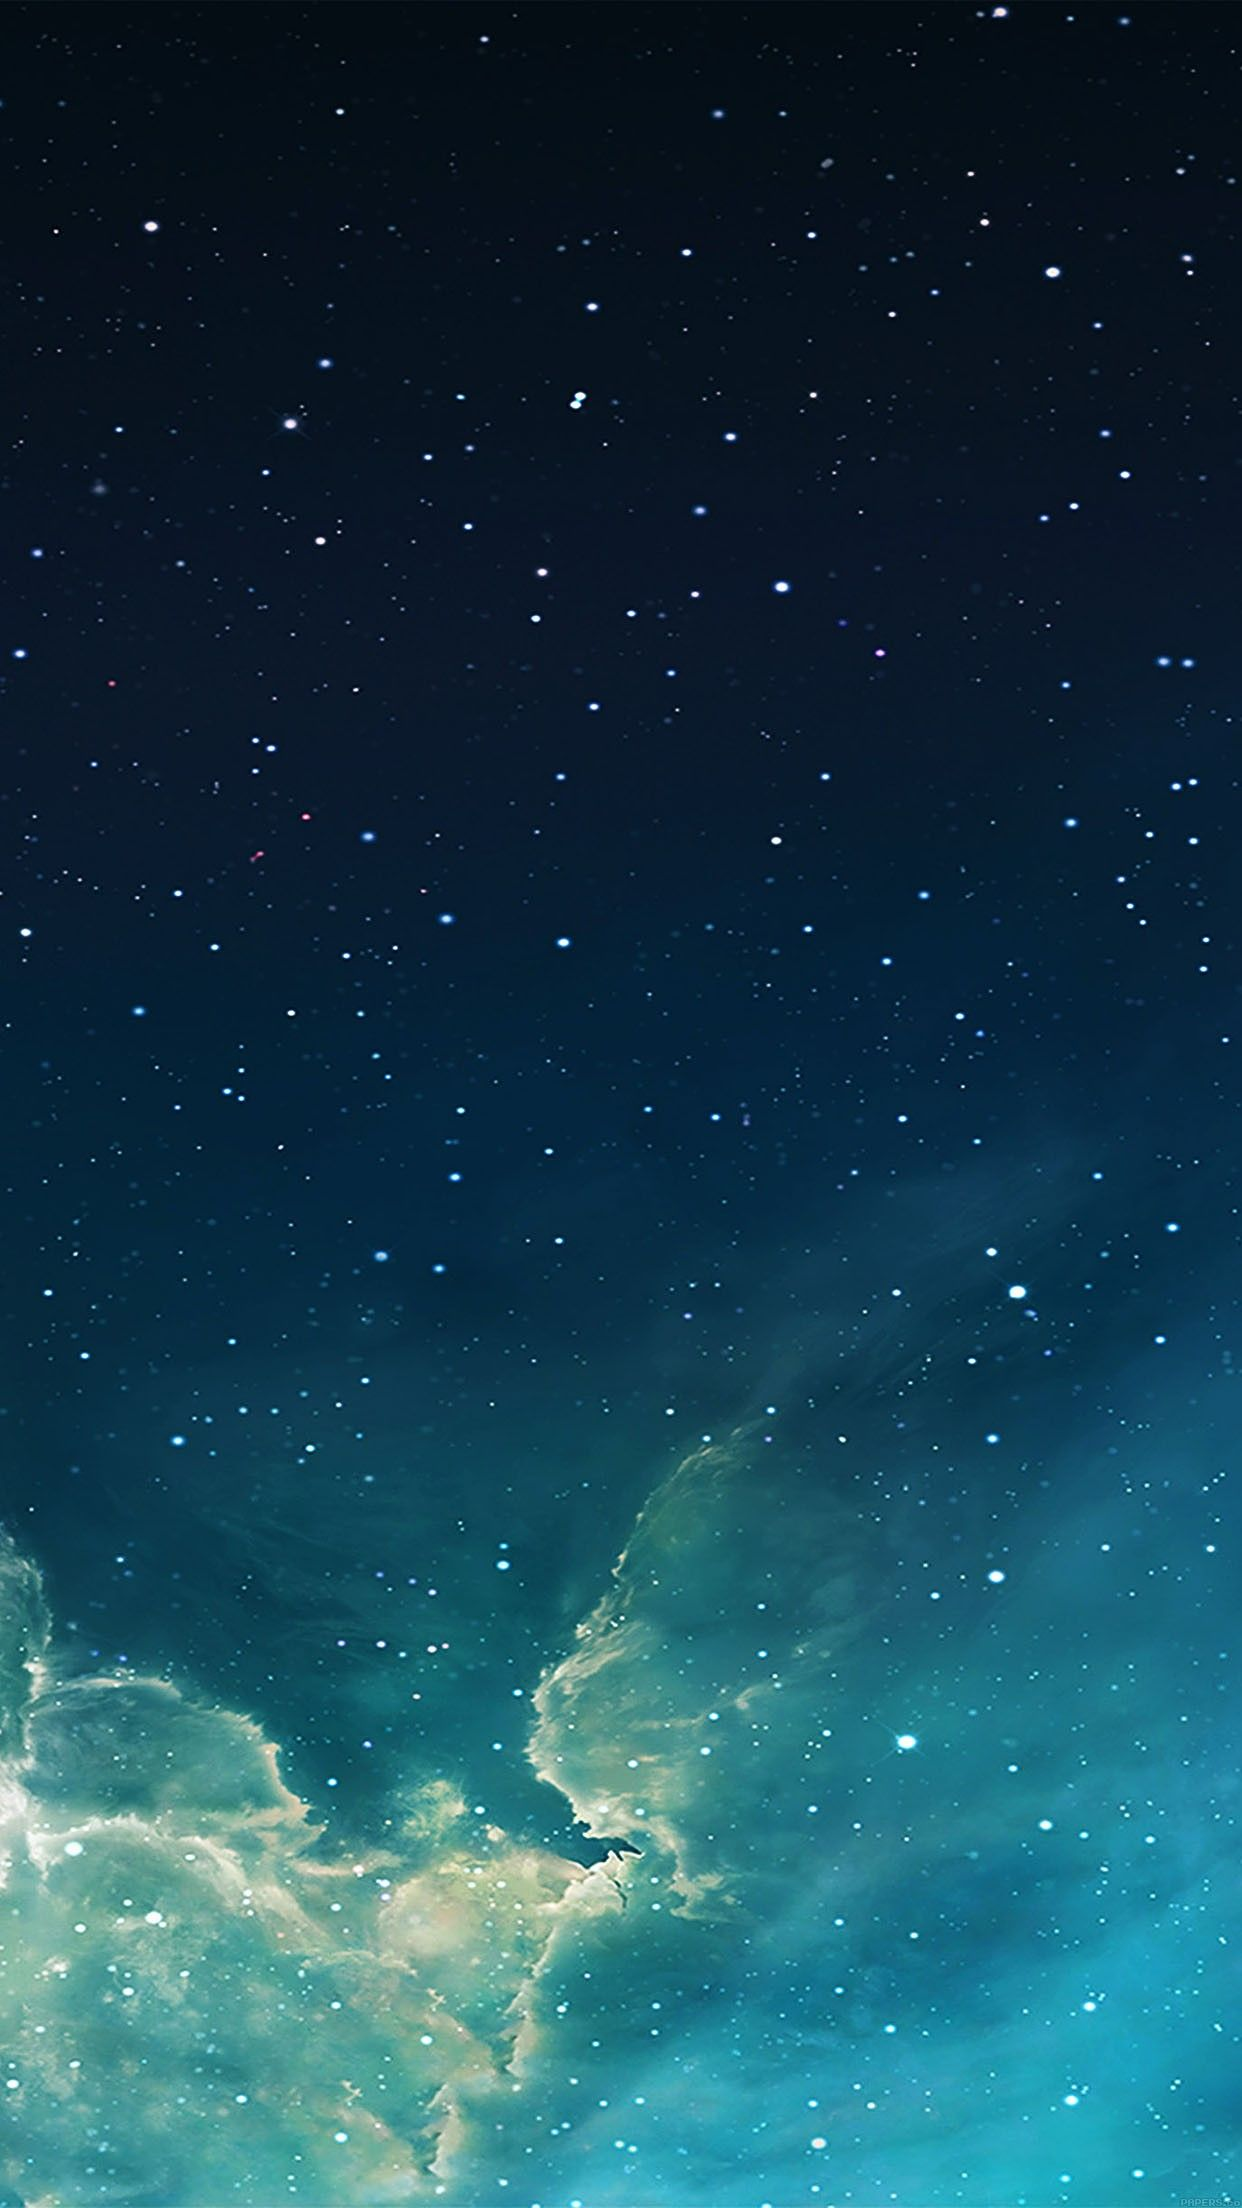 Wallpaper Galaxy Blue 7 Starry Star Sky Iphone 6 Plus Wallpapers Daily Best Blue Galaxy Wallpaper Night Sky Wallpaper Iphone 6 Plus Wallpaper